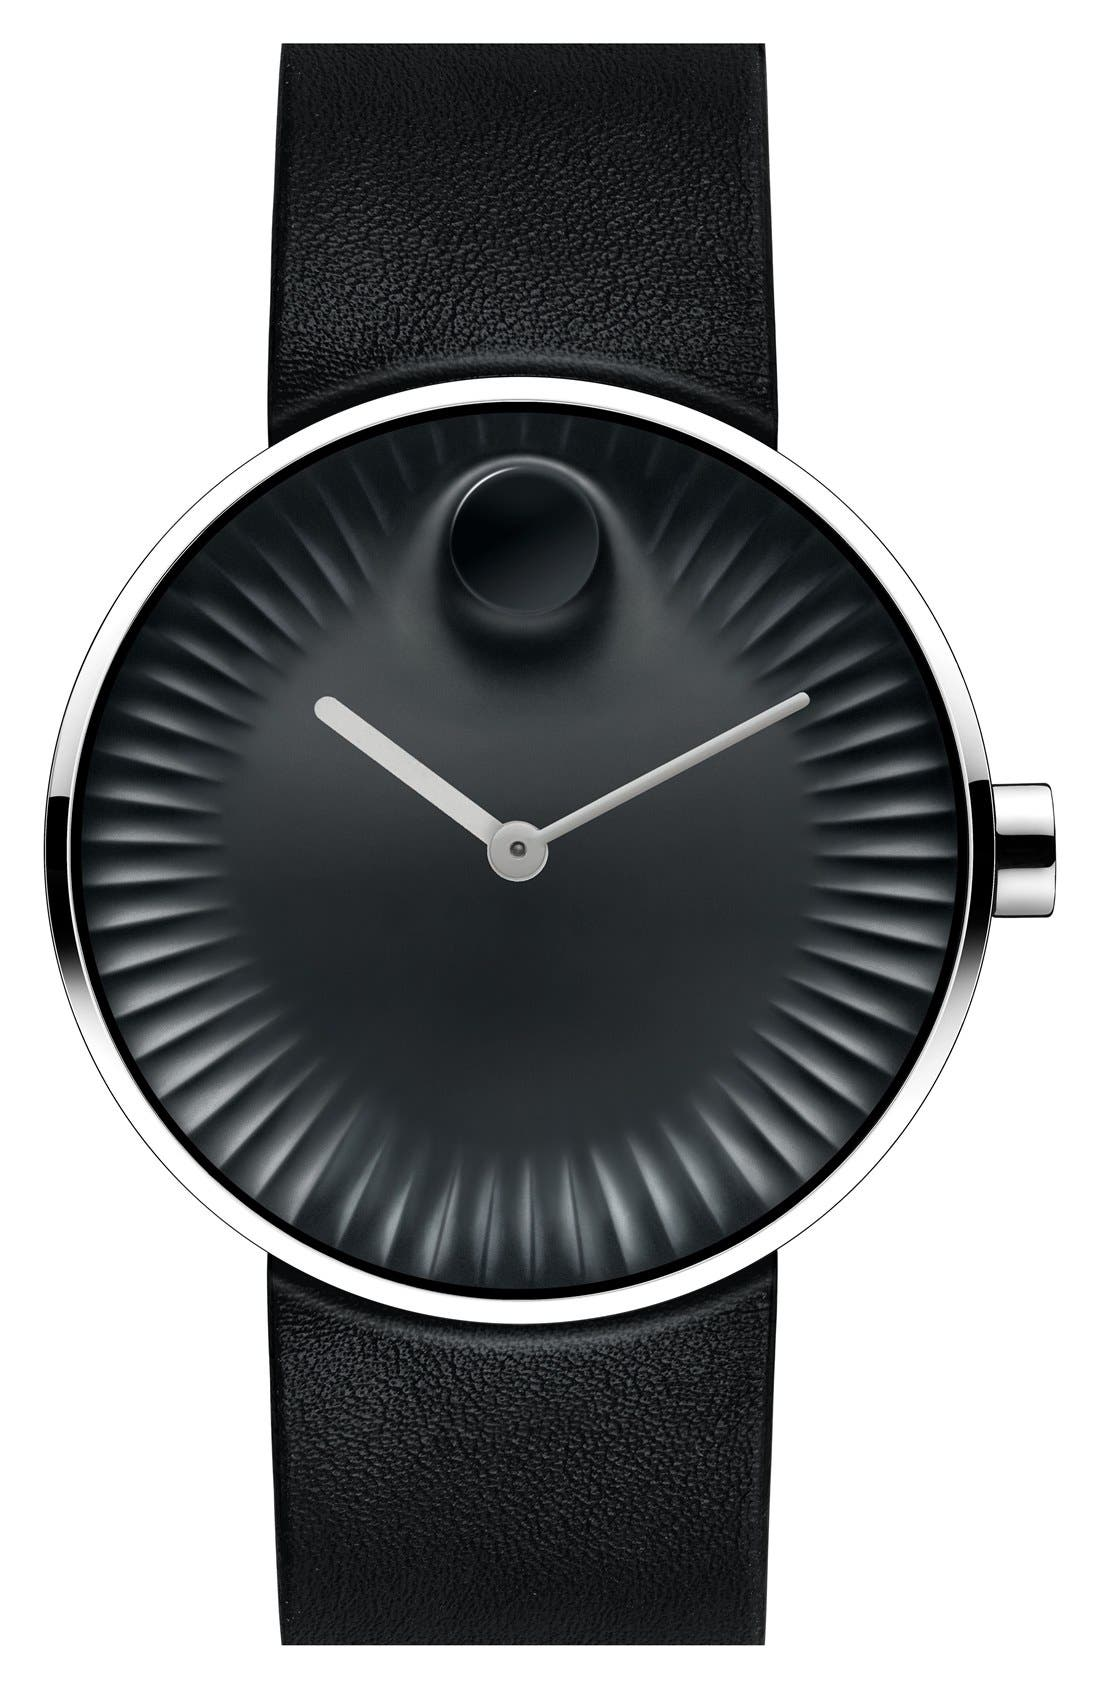 Main Image - Movado 'Edge' Leather Strap Watch, 40mm